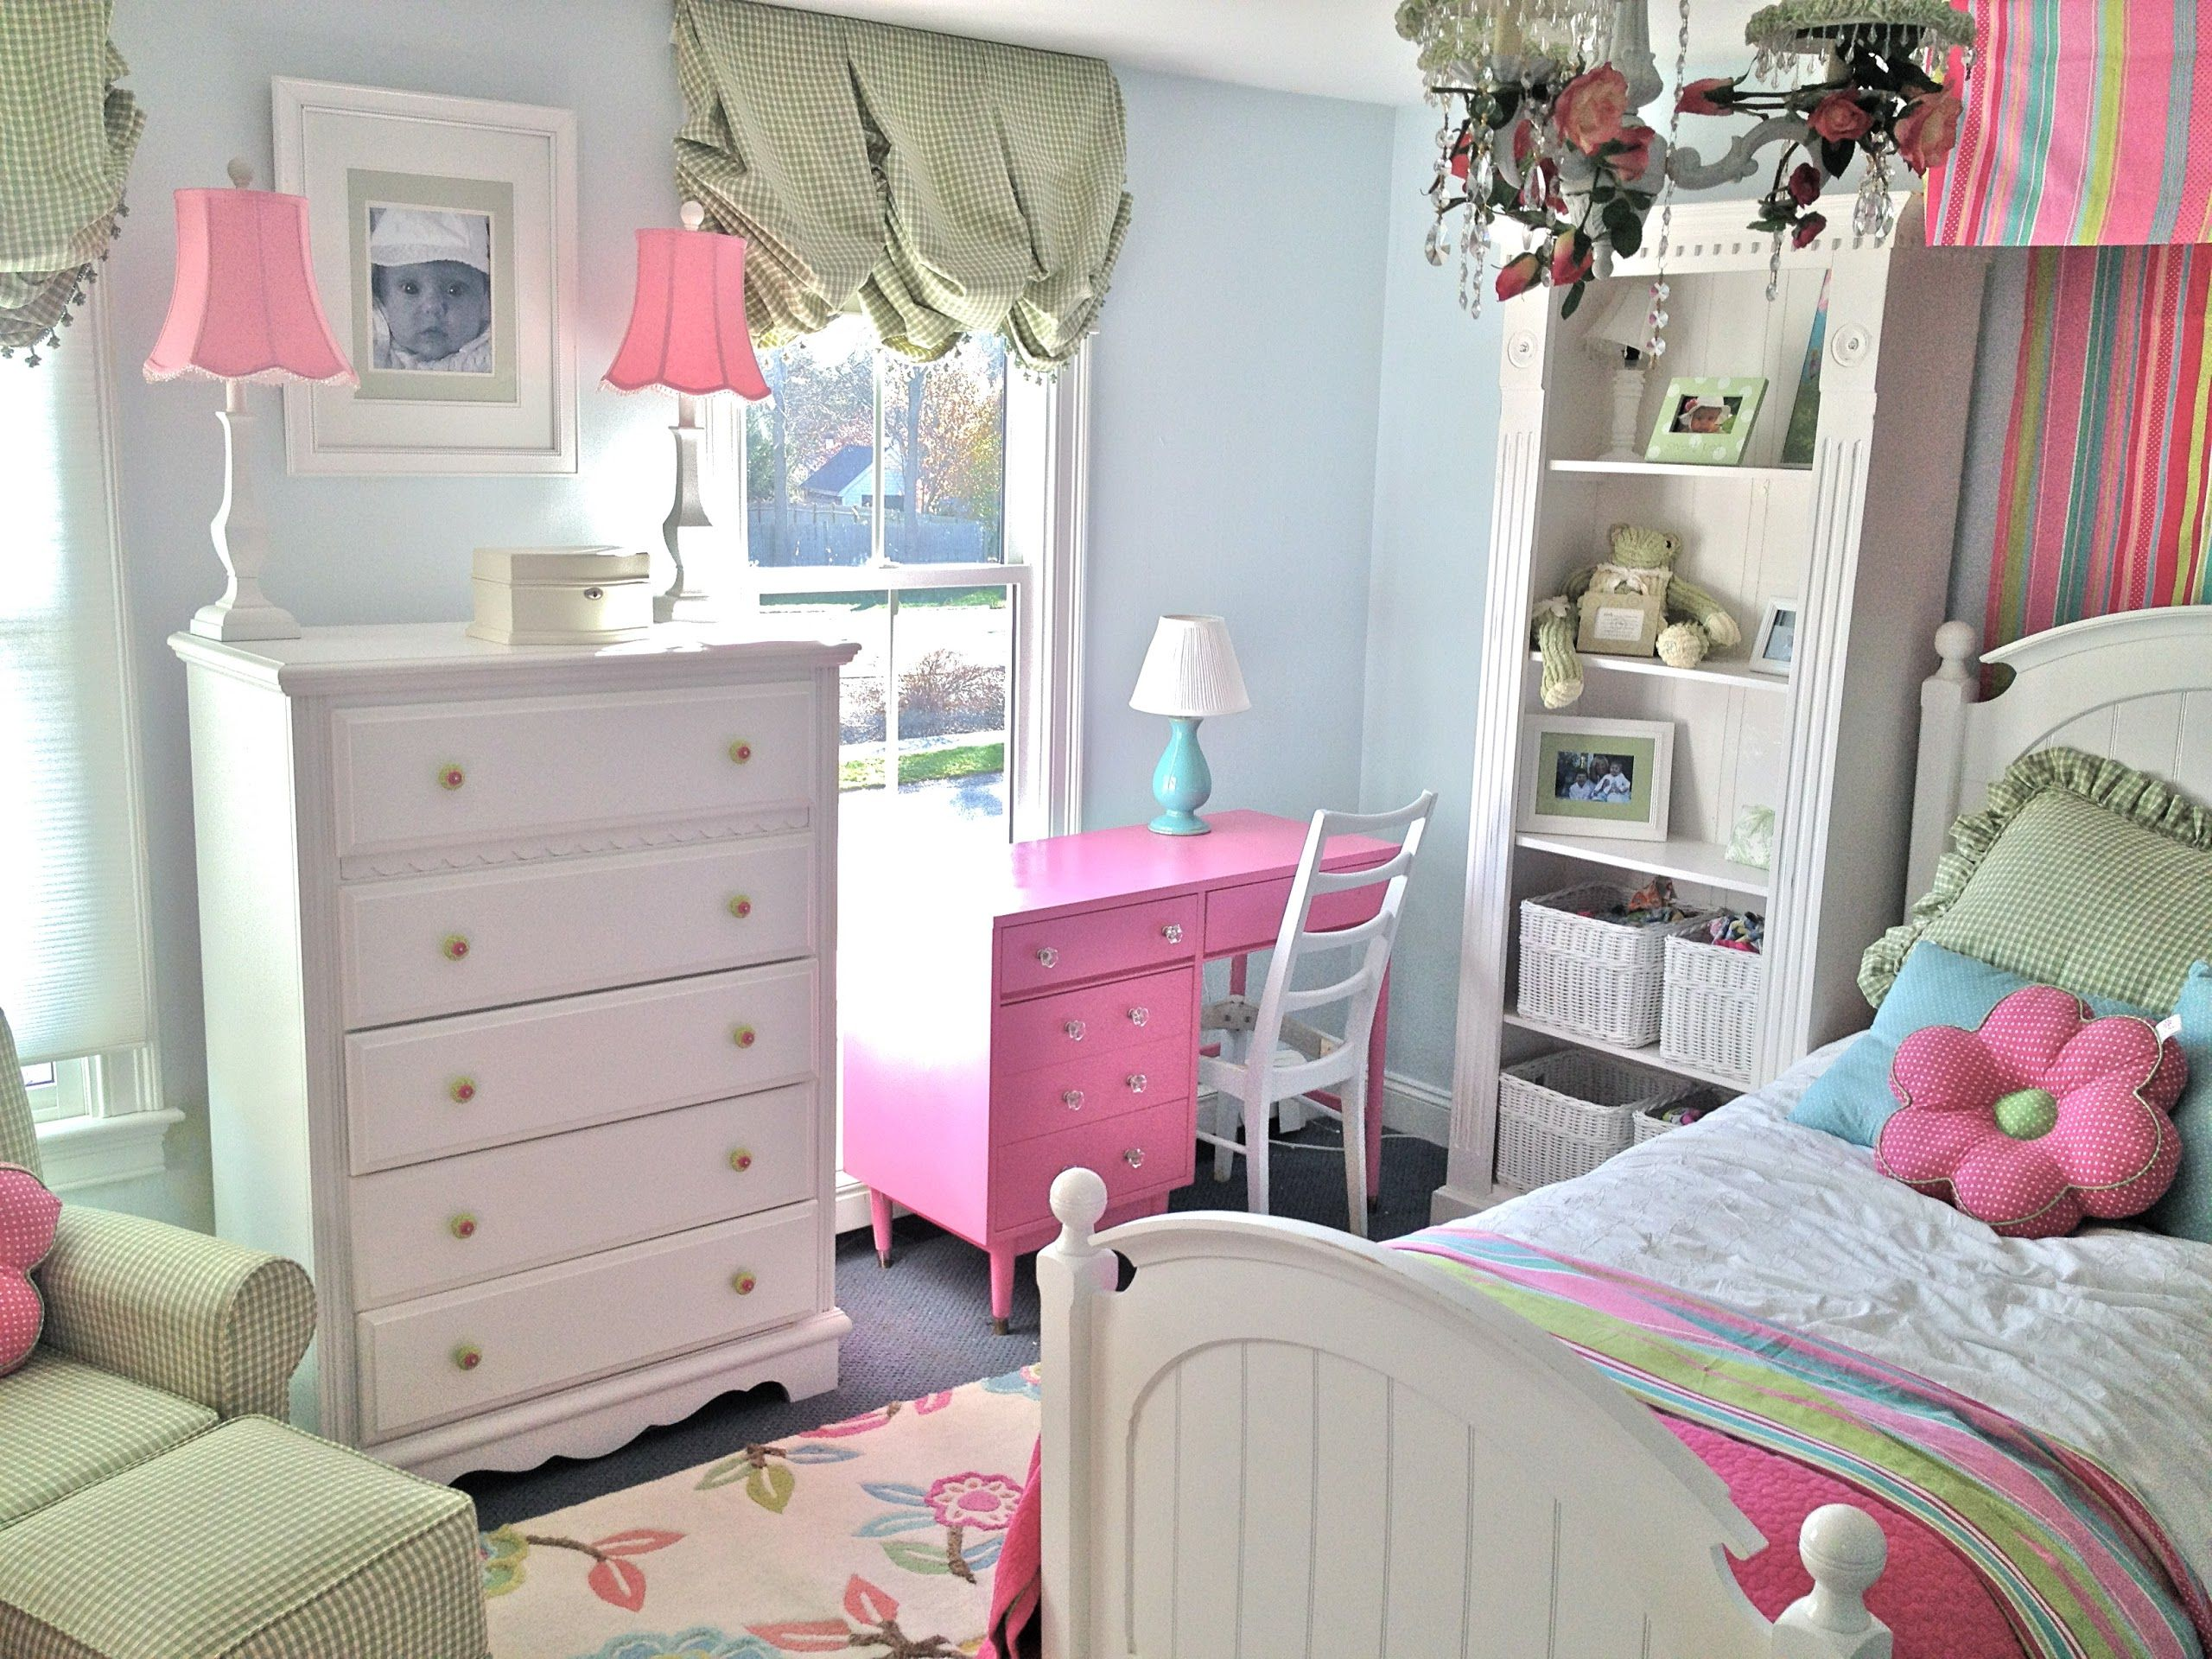 cute white and light blue room decoration for teen girl bedroom